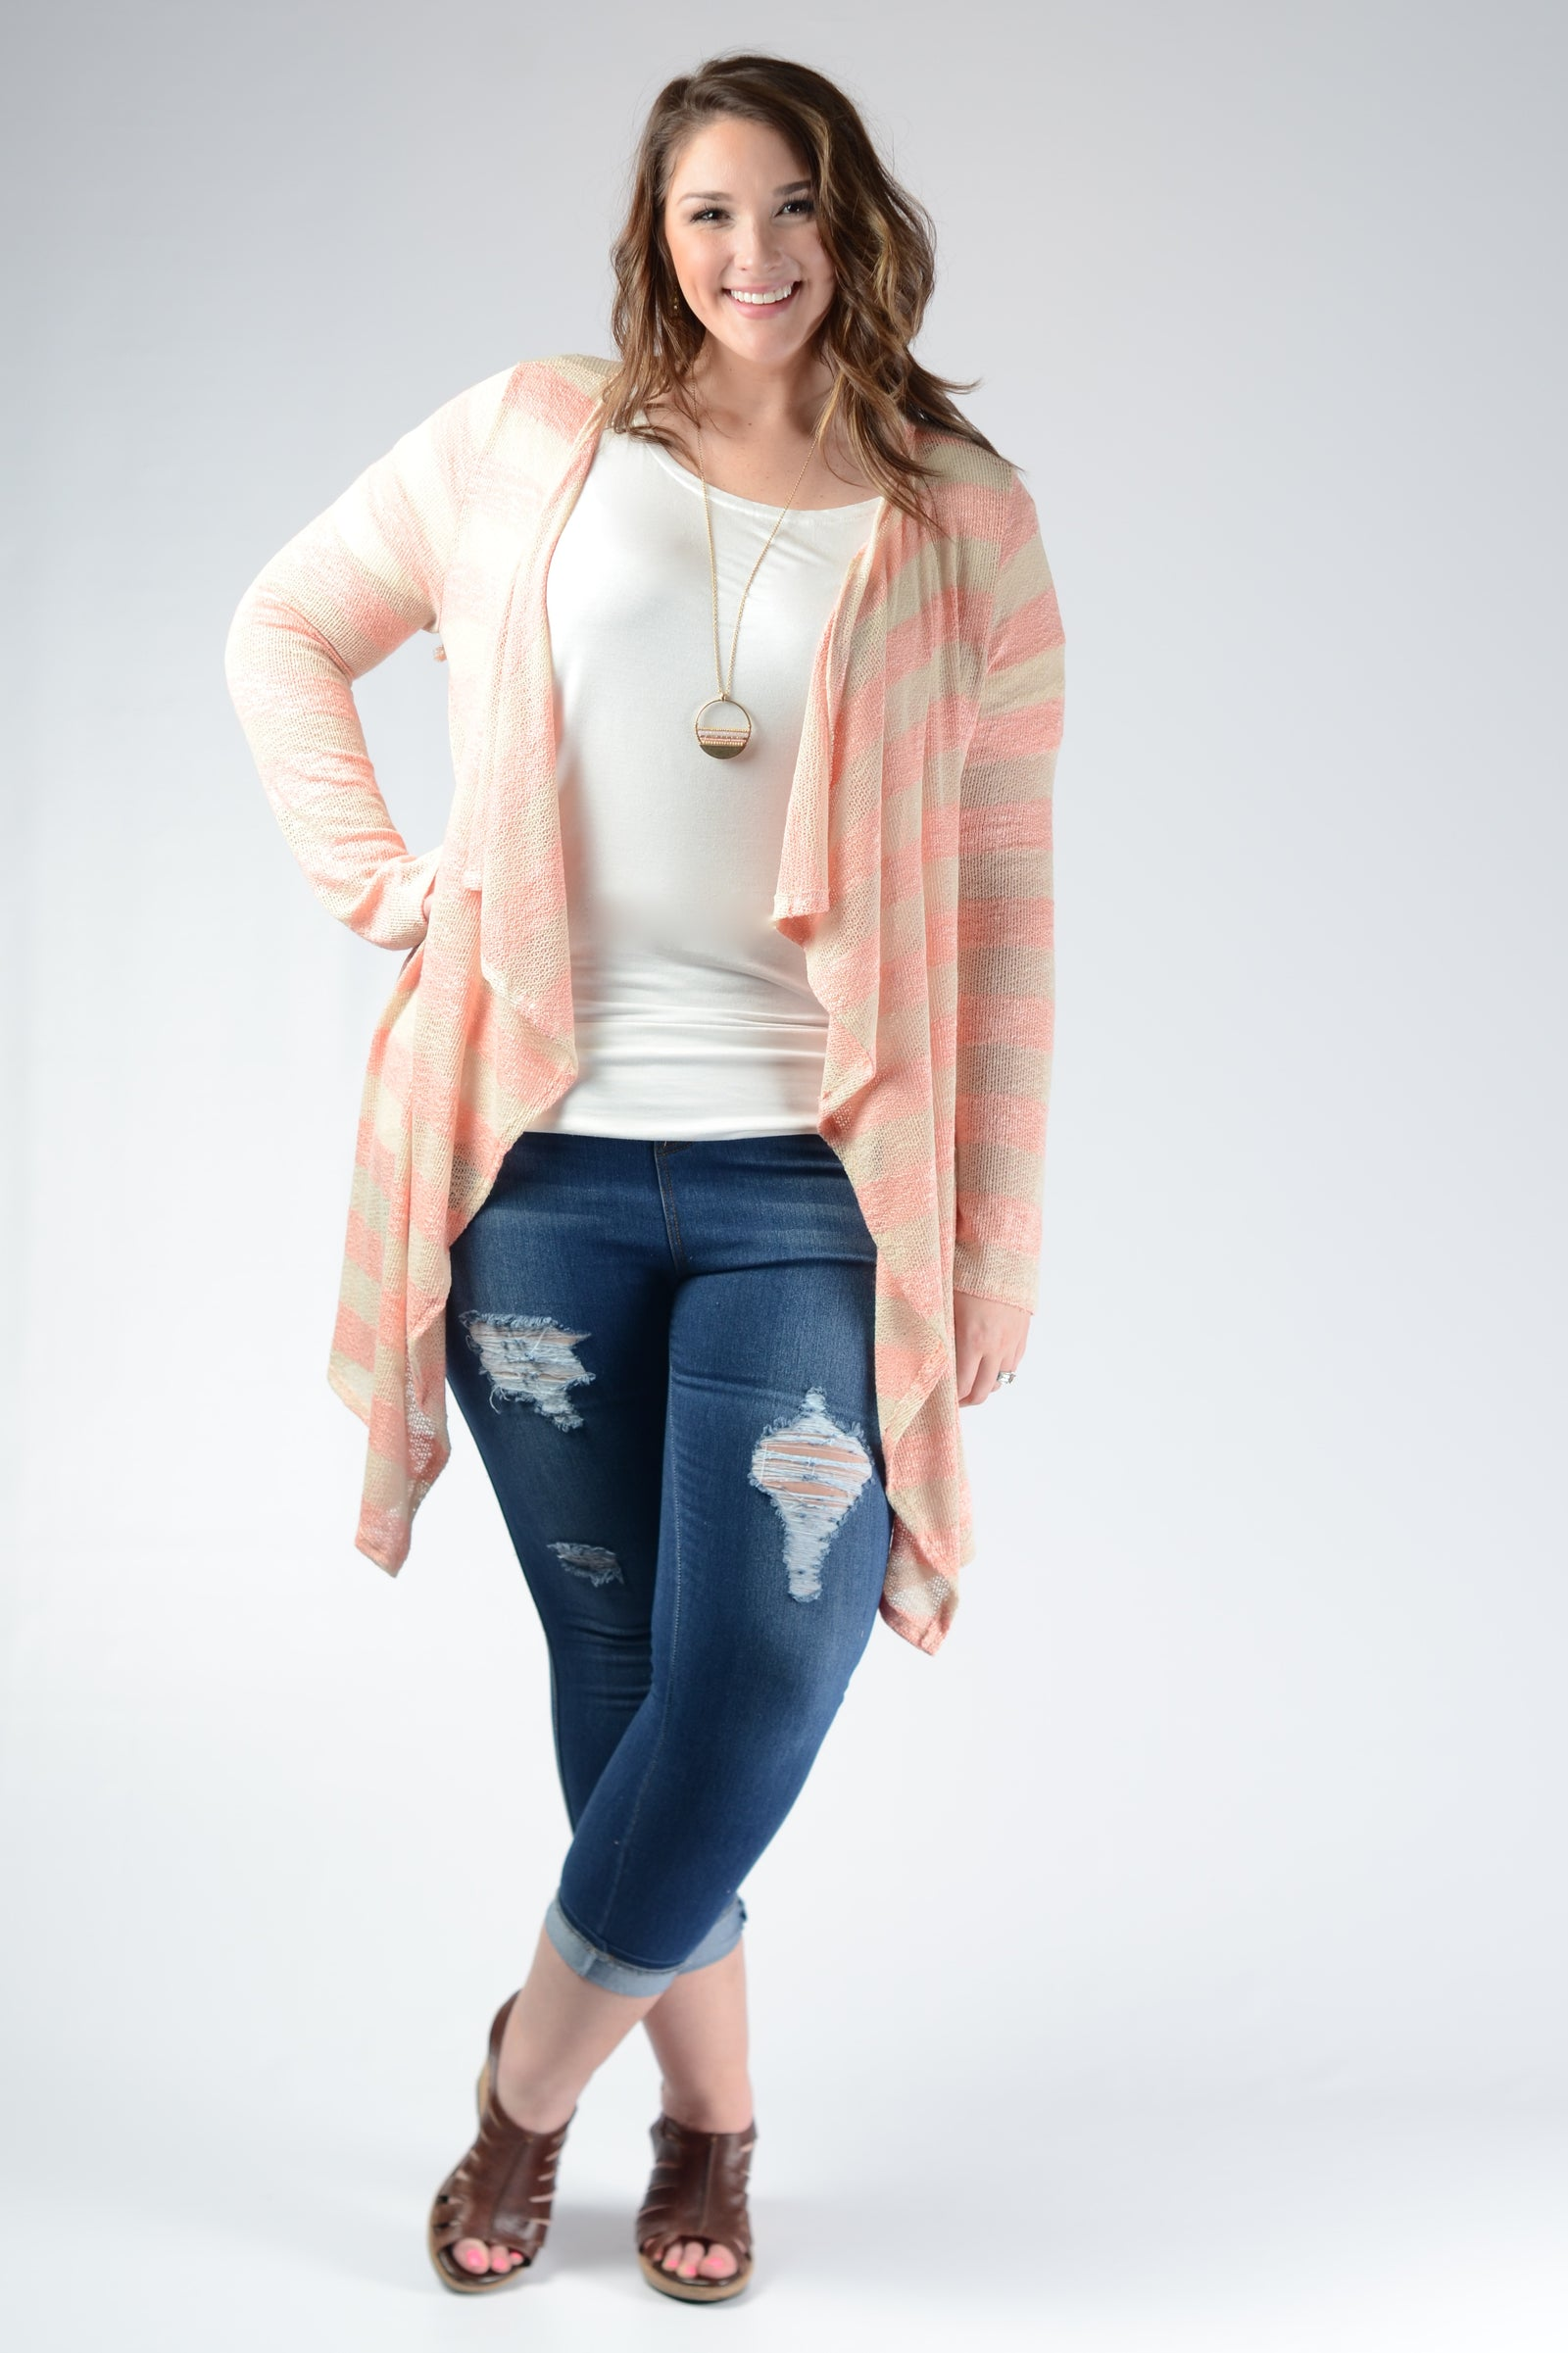 Peach Striped Knit Cardigan - www.mycurvystore.com - Curvy Boutique - Plus Size